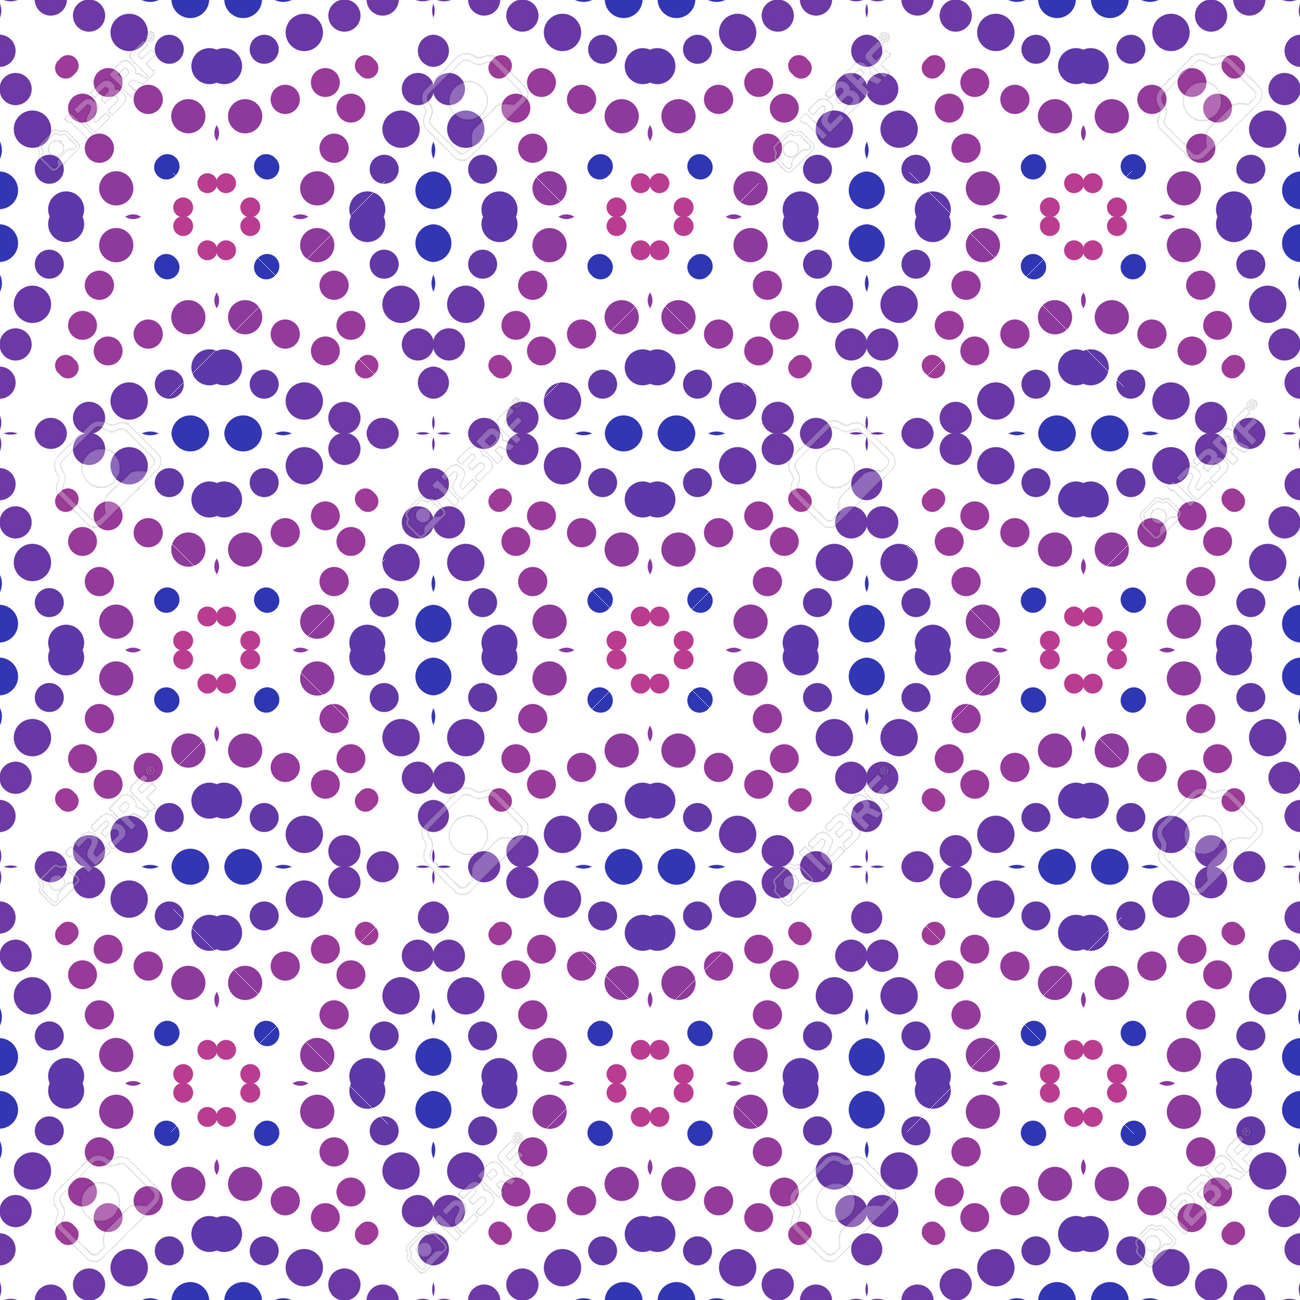 Seamless abstract pattern background with a variety of colored circles. - 141929048